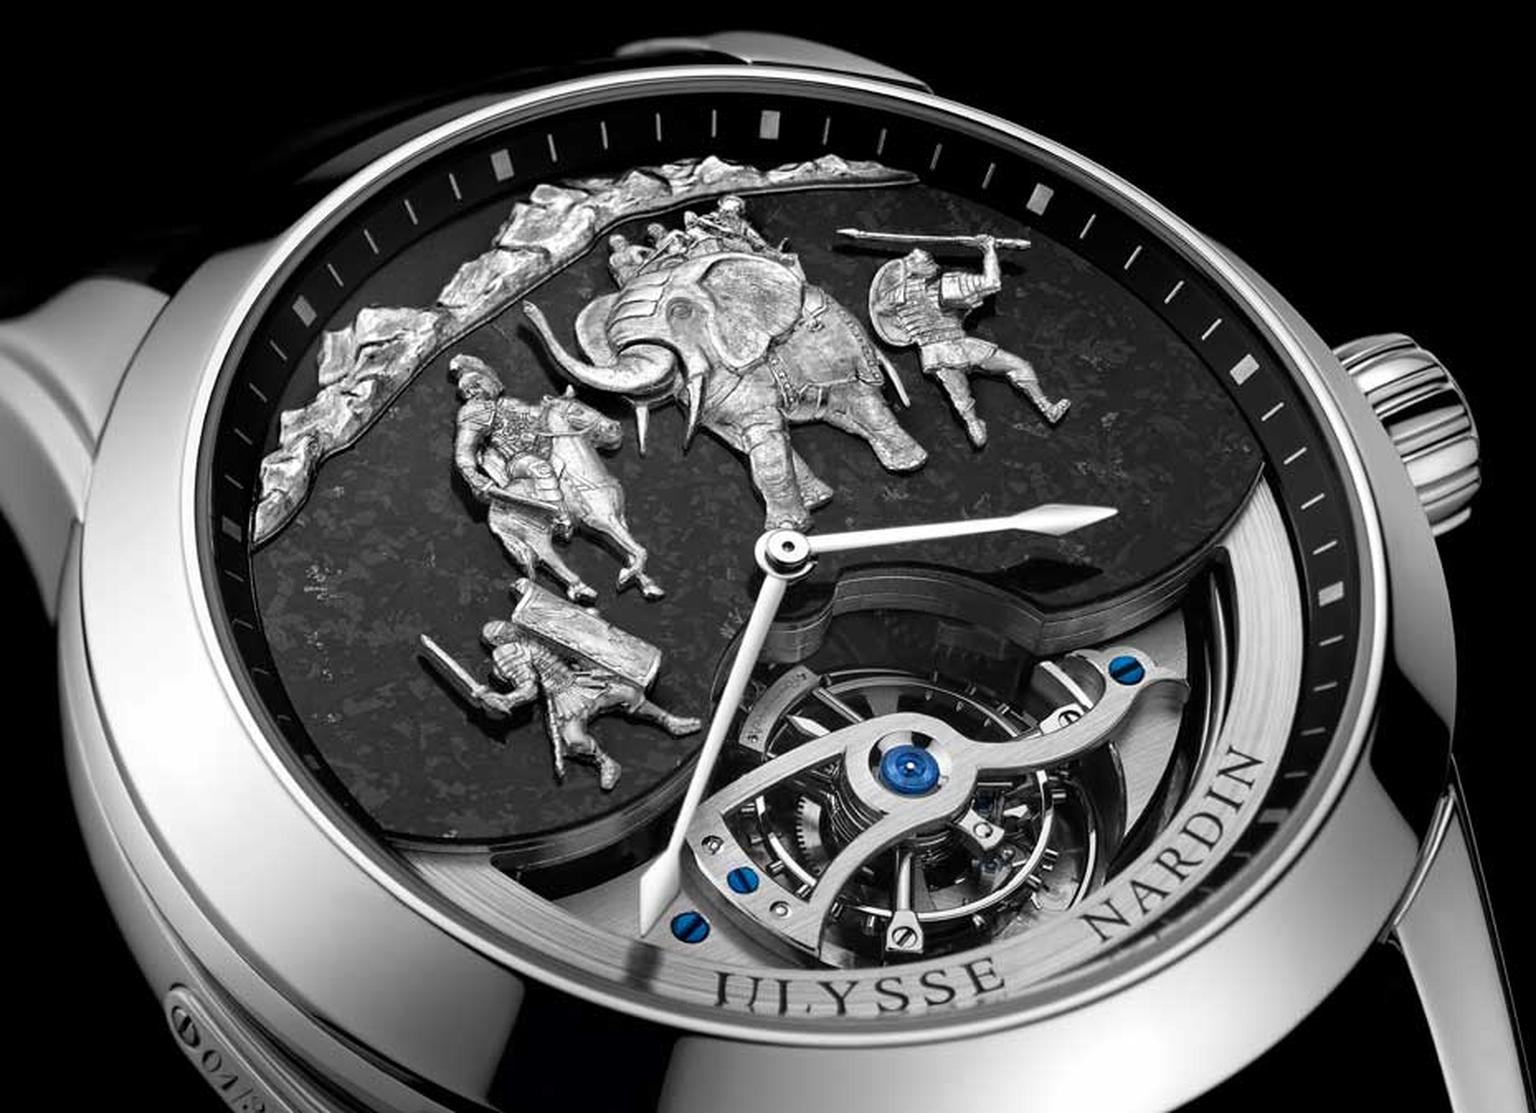 Ulysse Nardin Hannibal Minute Repeater is a limited edition of 30 watches in a 44mm platinum case. In addition to the Westminster chimes, the figures on the dial are synchronised with the sound of the gongs.